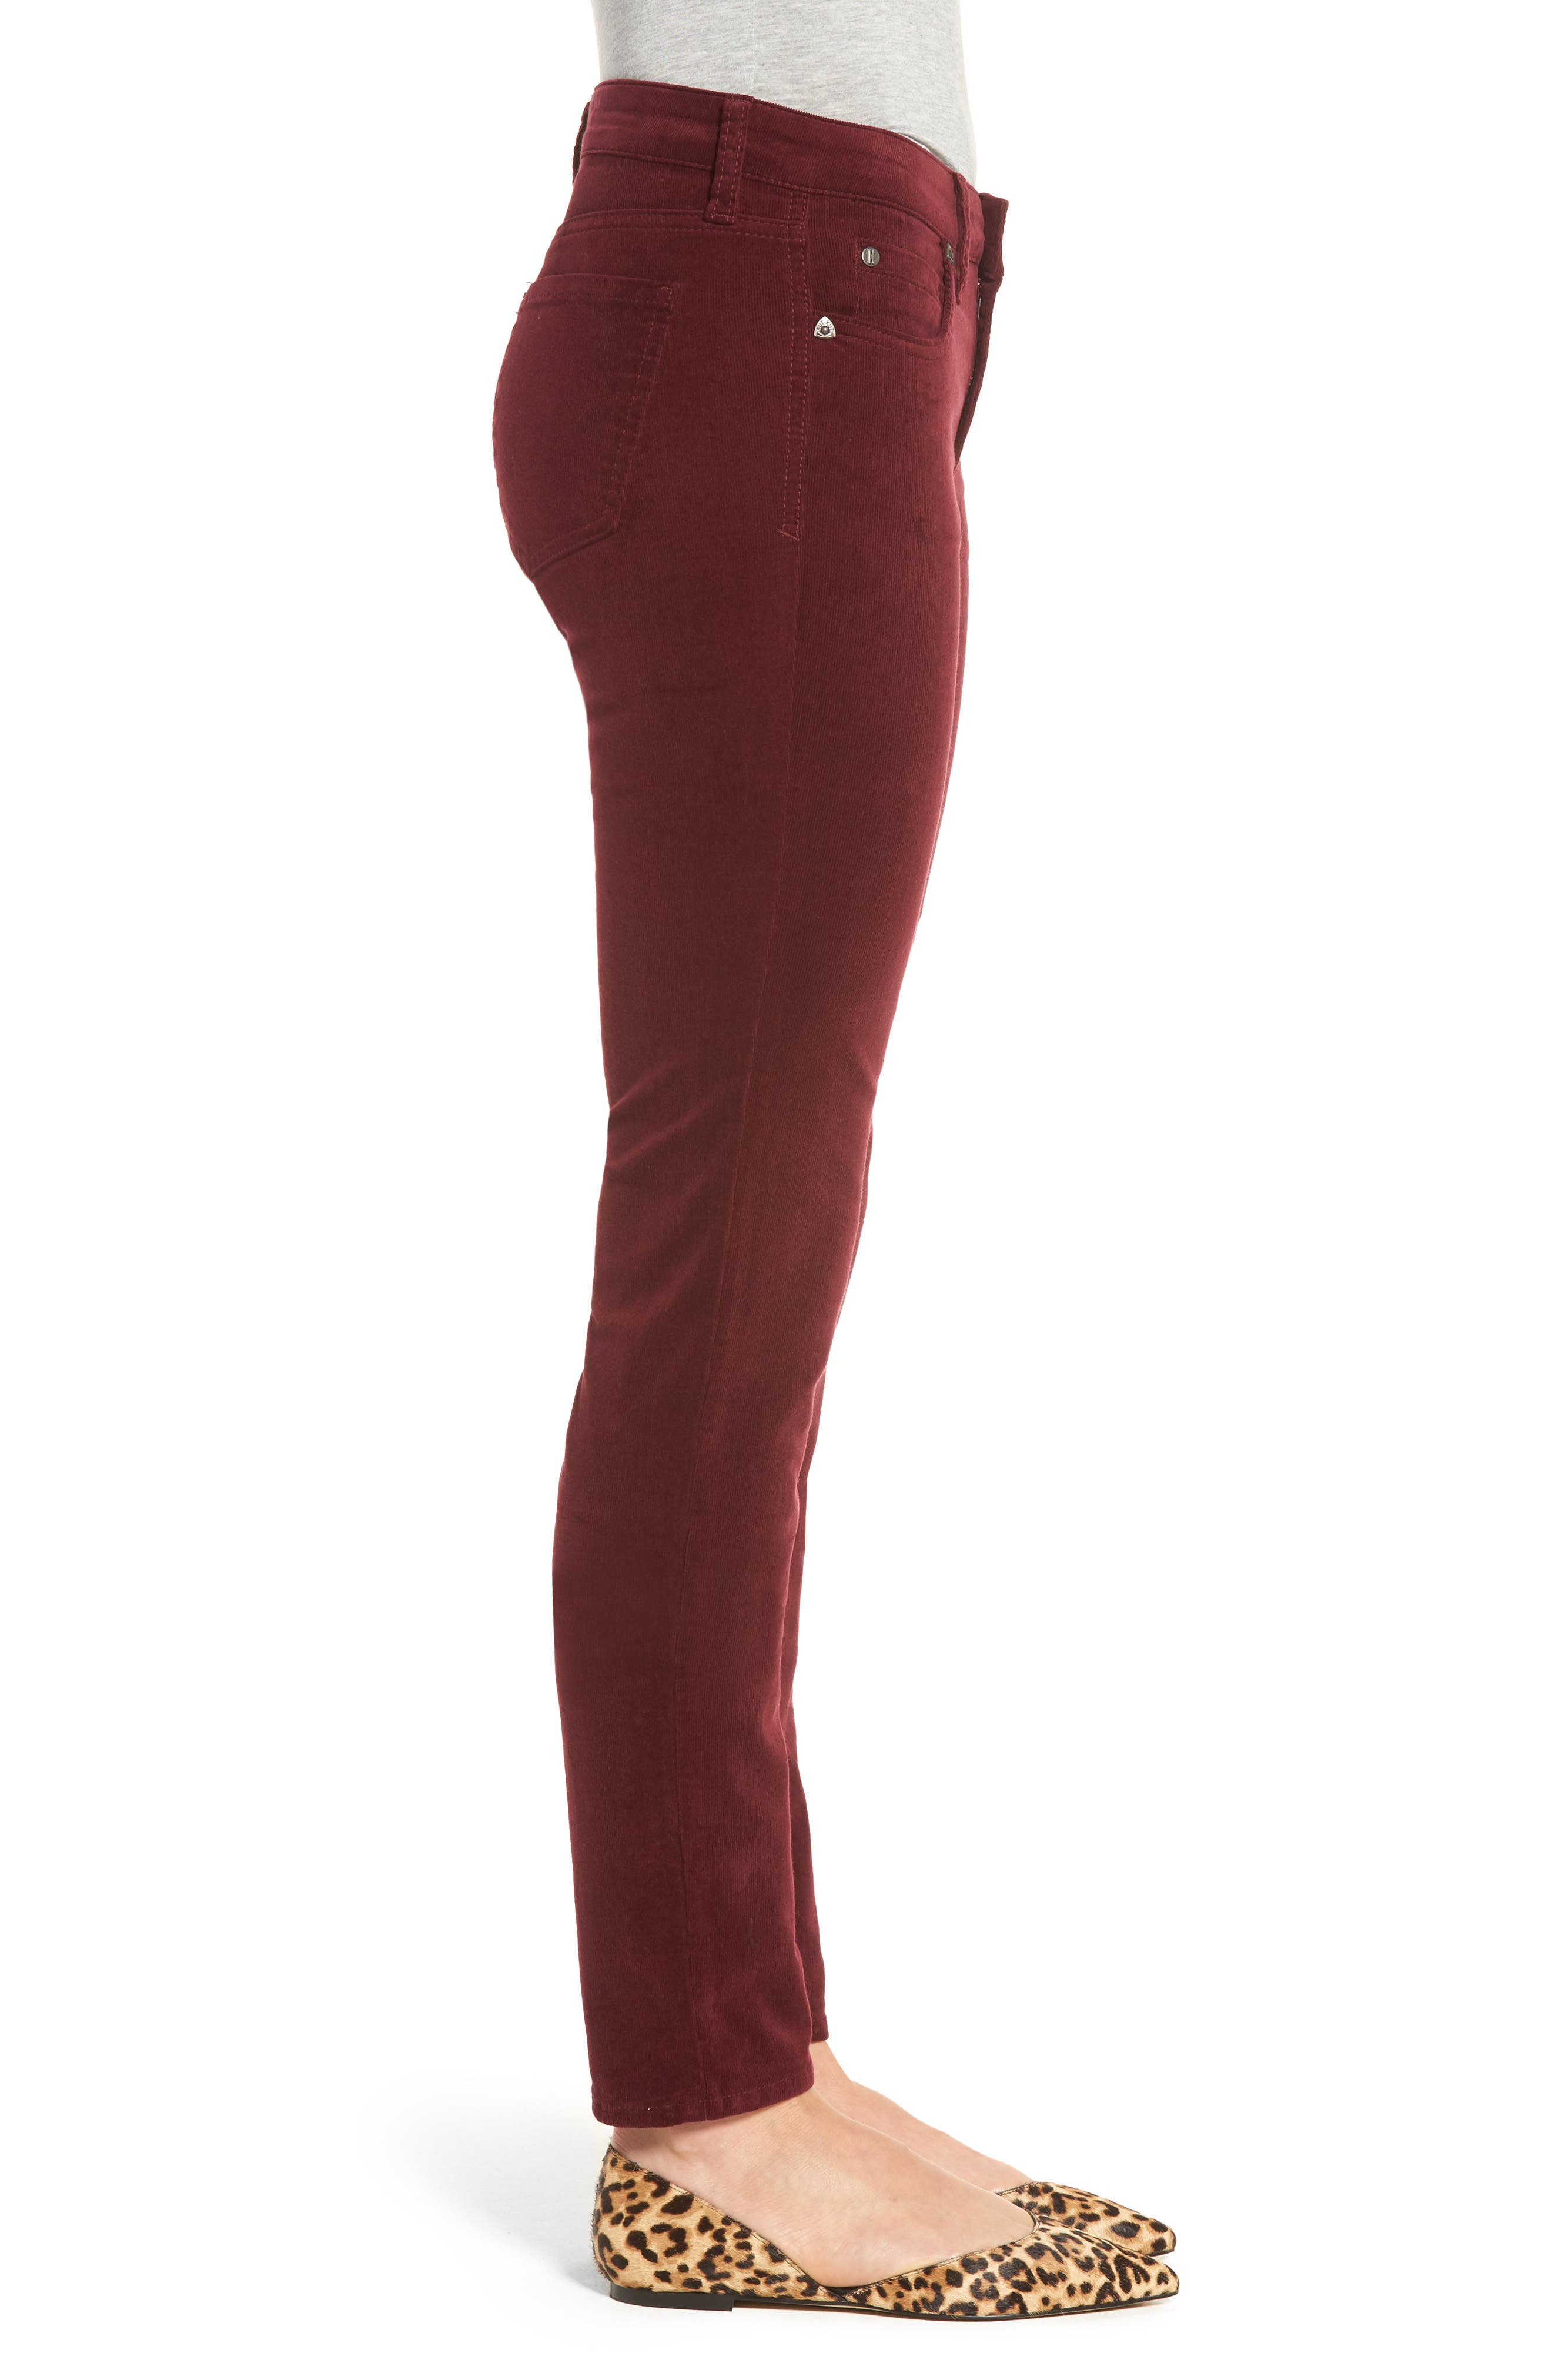 Alternate Image 3  - KUT from the Kloth Diana Stretch Corduroy Skinny Pants (Regular & Petite)